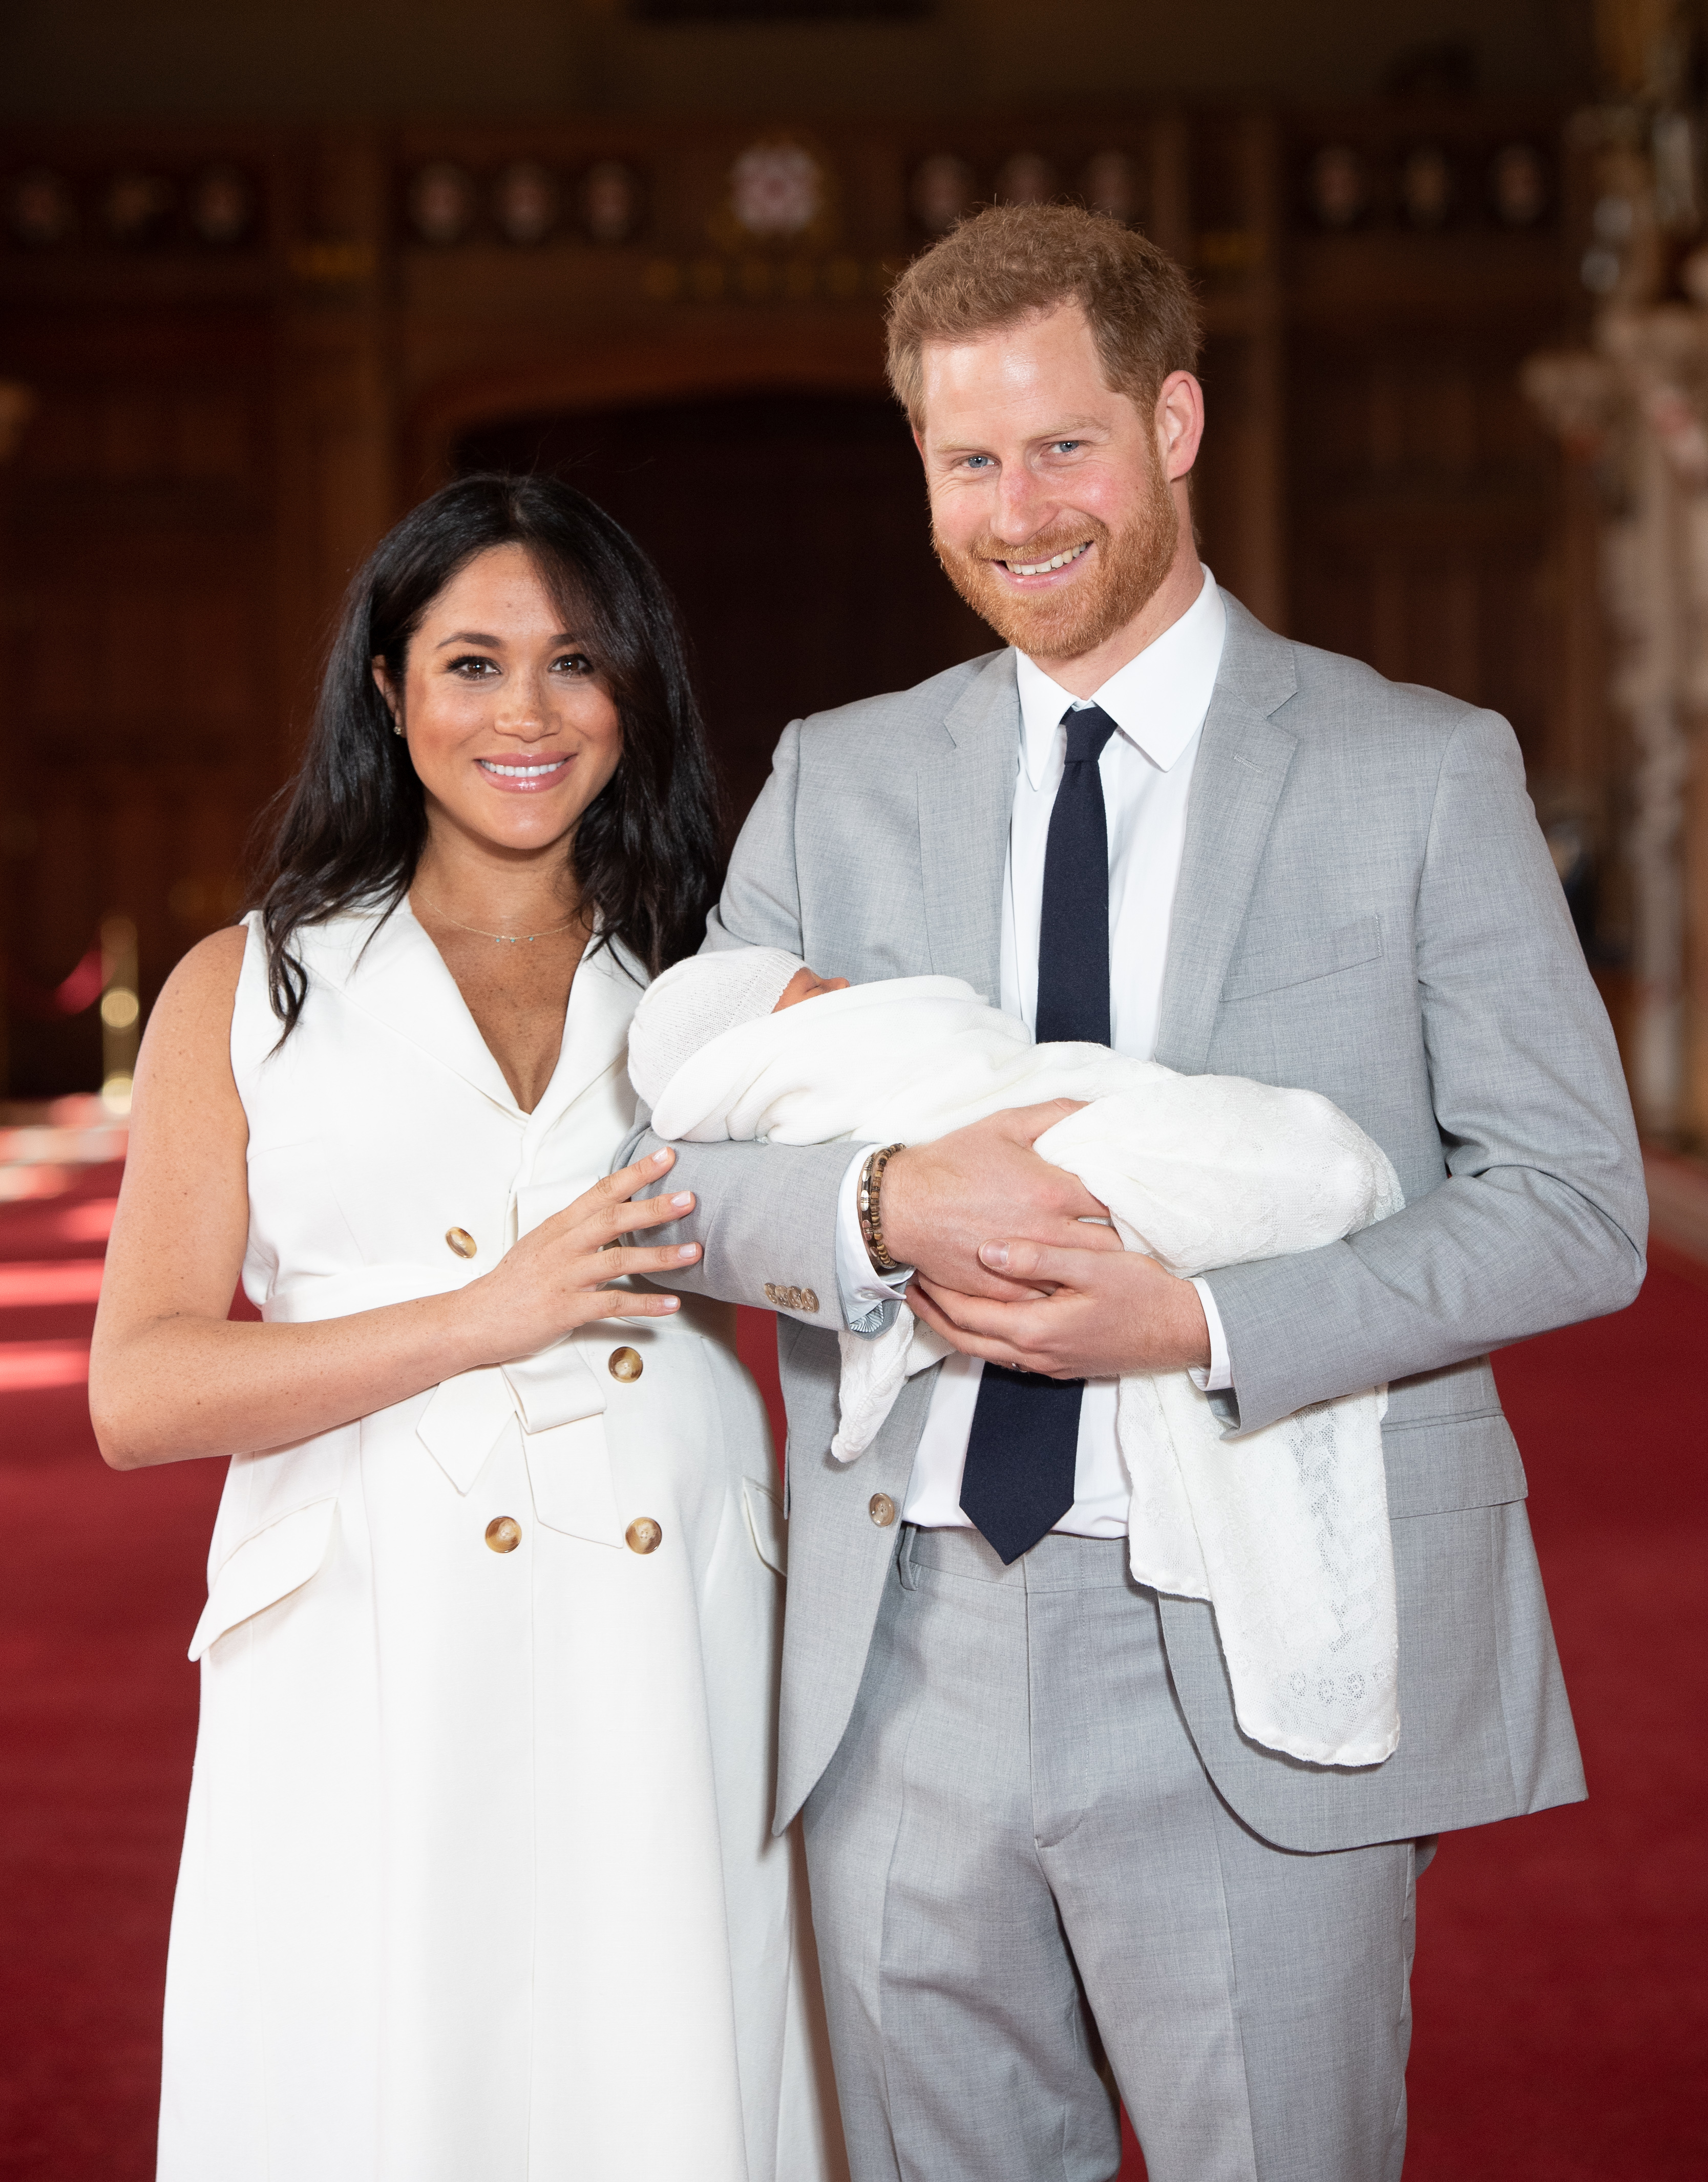 Baby Archie's Royal Cousins May Hold a Clue About When We'll See Him Next